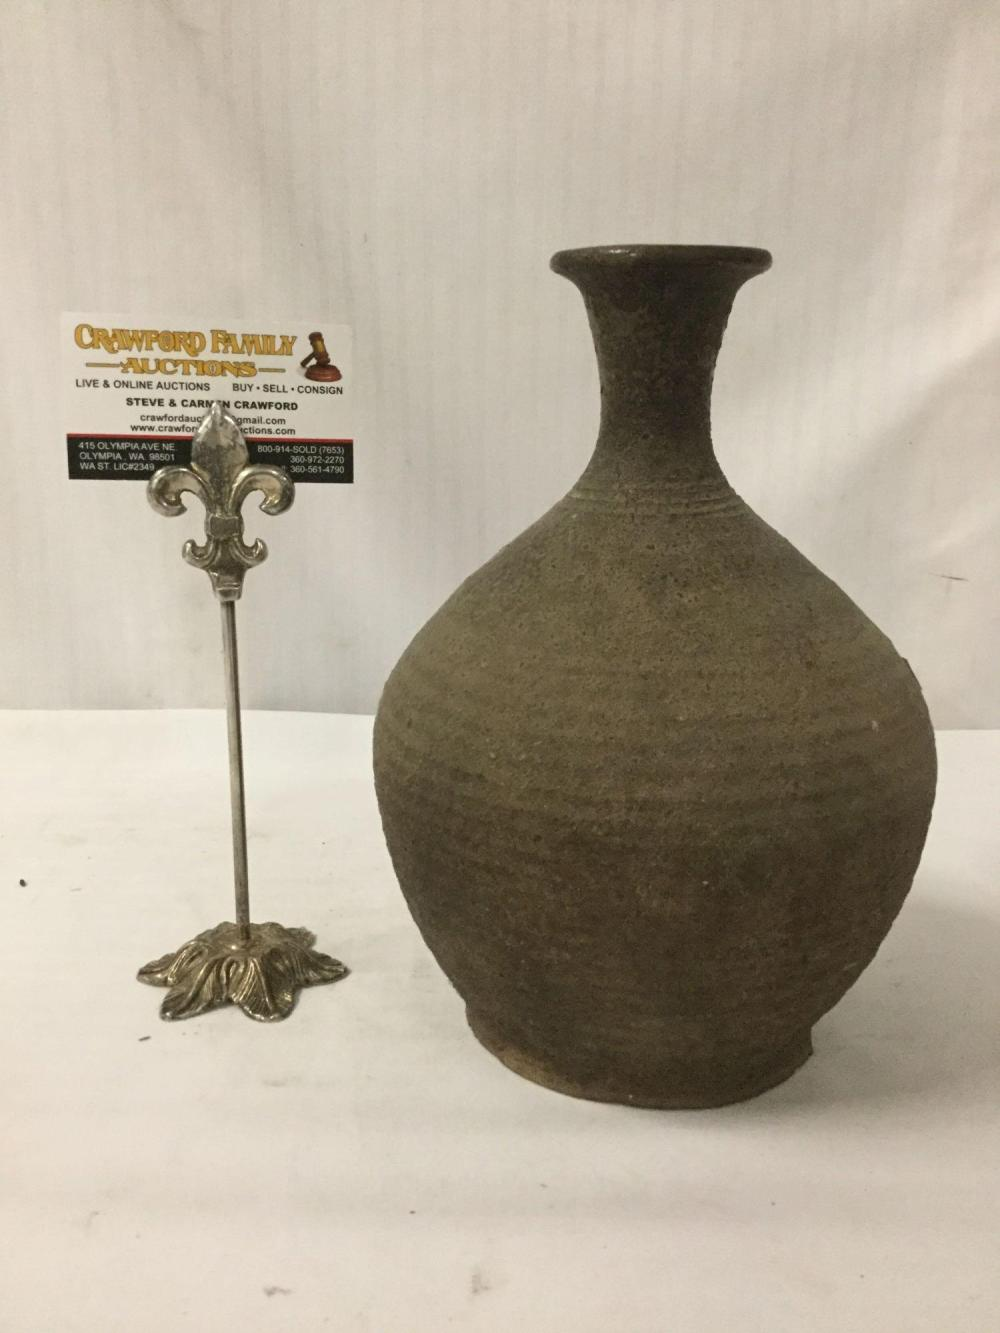 Old antique earthenware vase (from Sankampaeng region in Thailand), with ribbed design